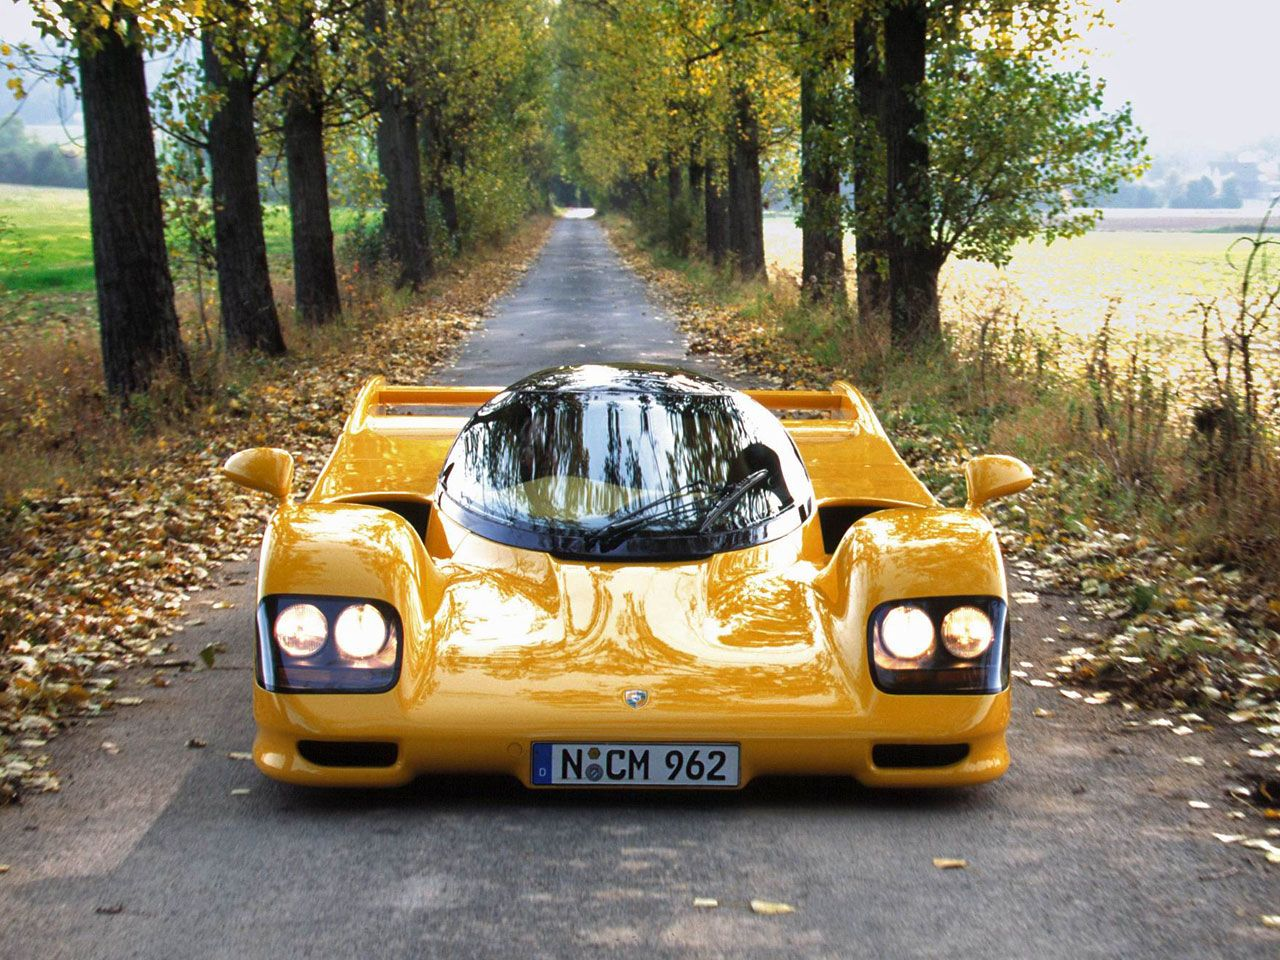 Dauer 962. It might be based on Porsche's 962 race car, but the 962 ...